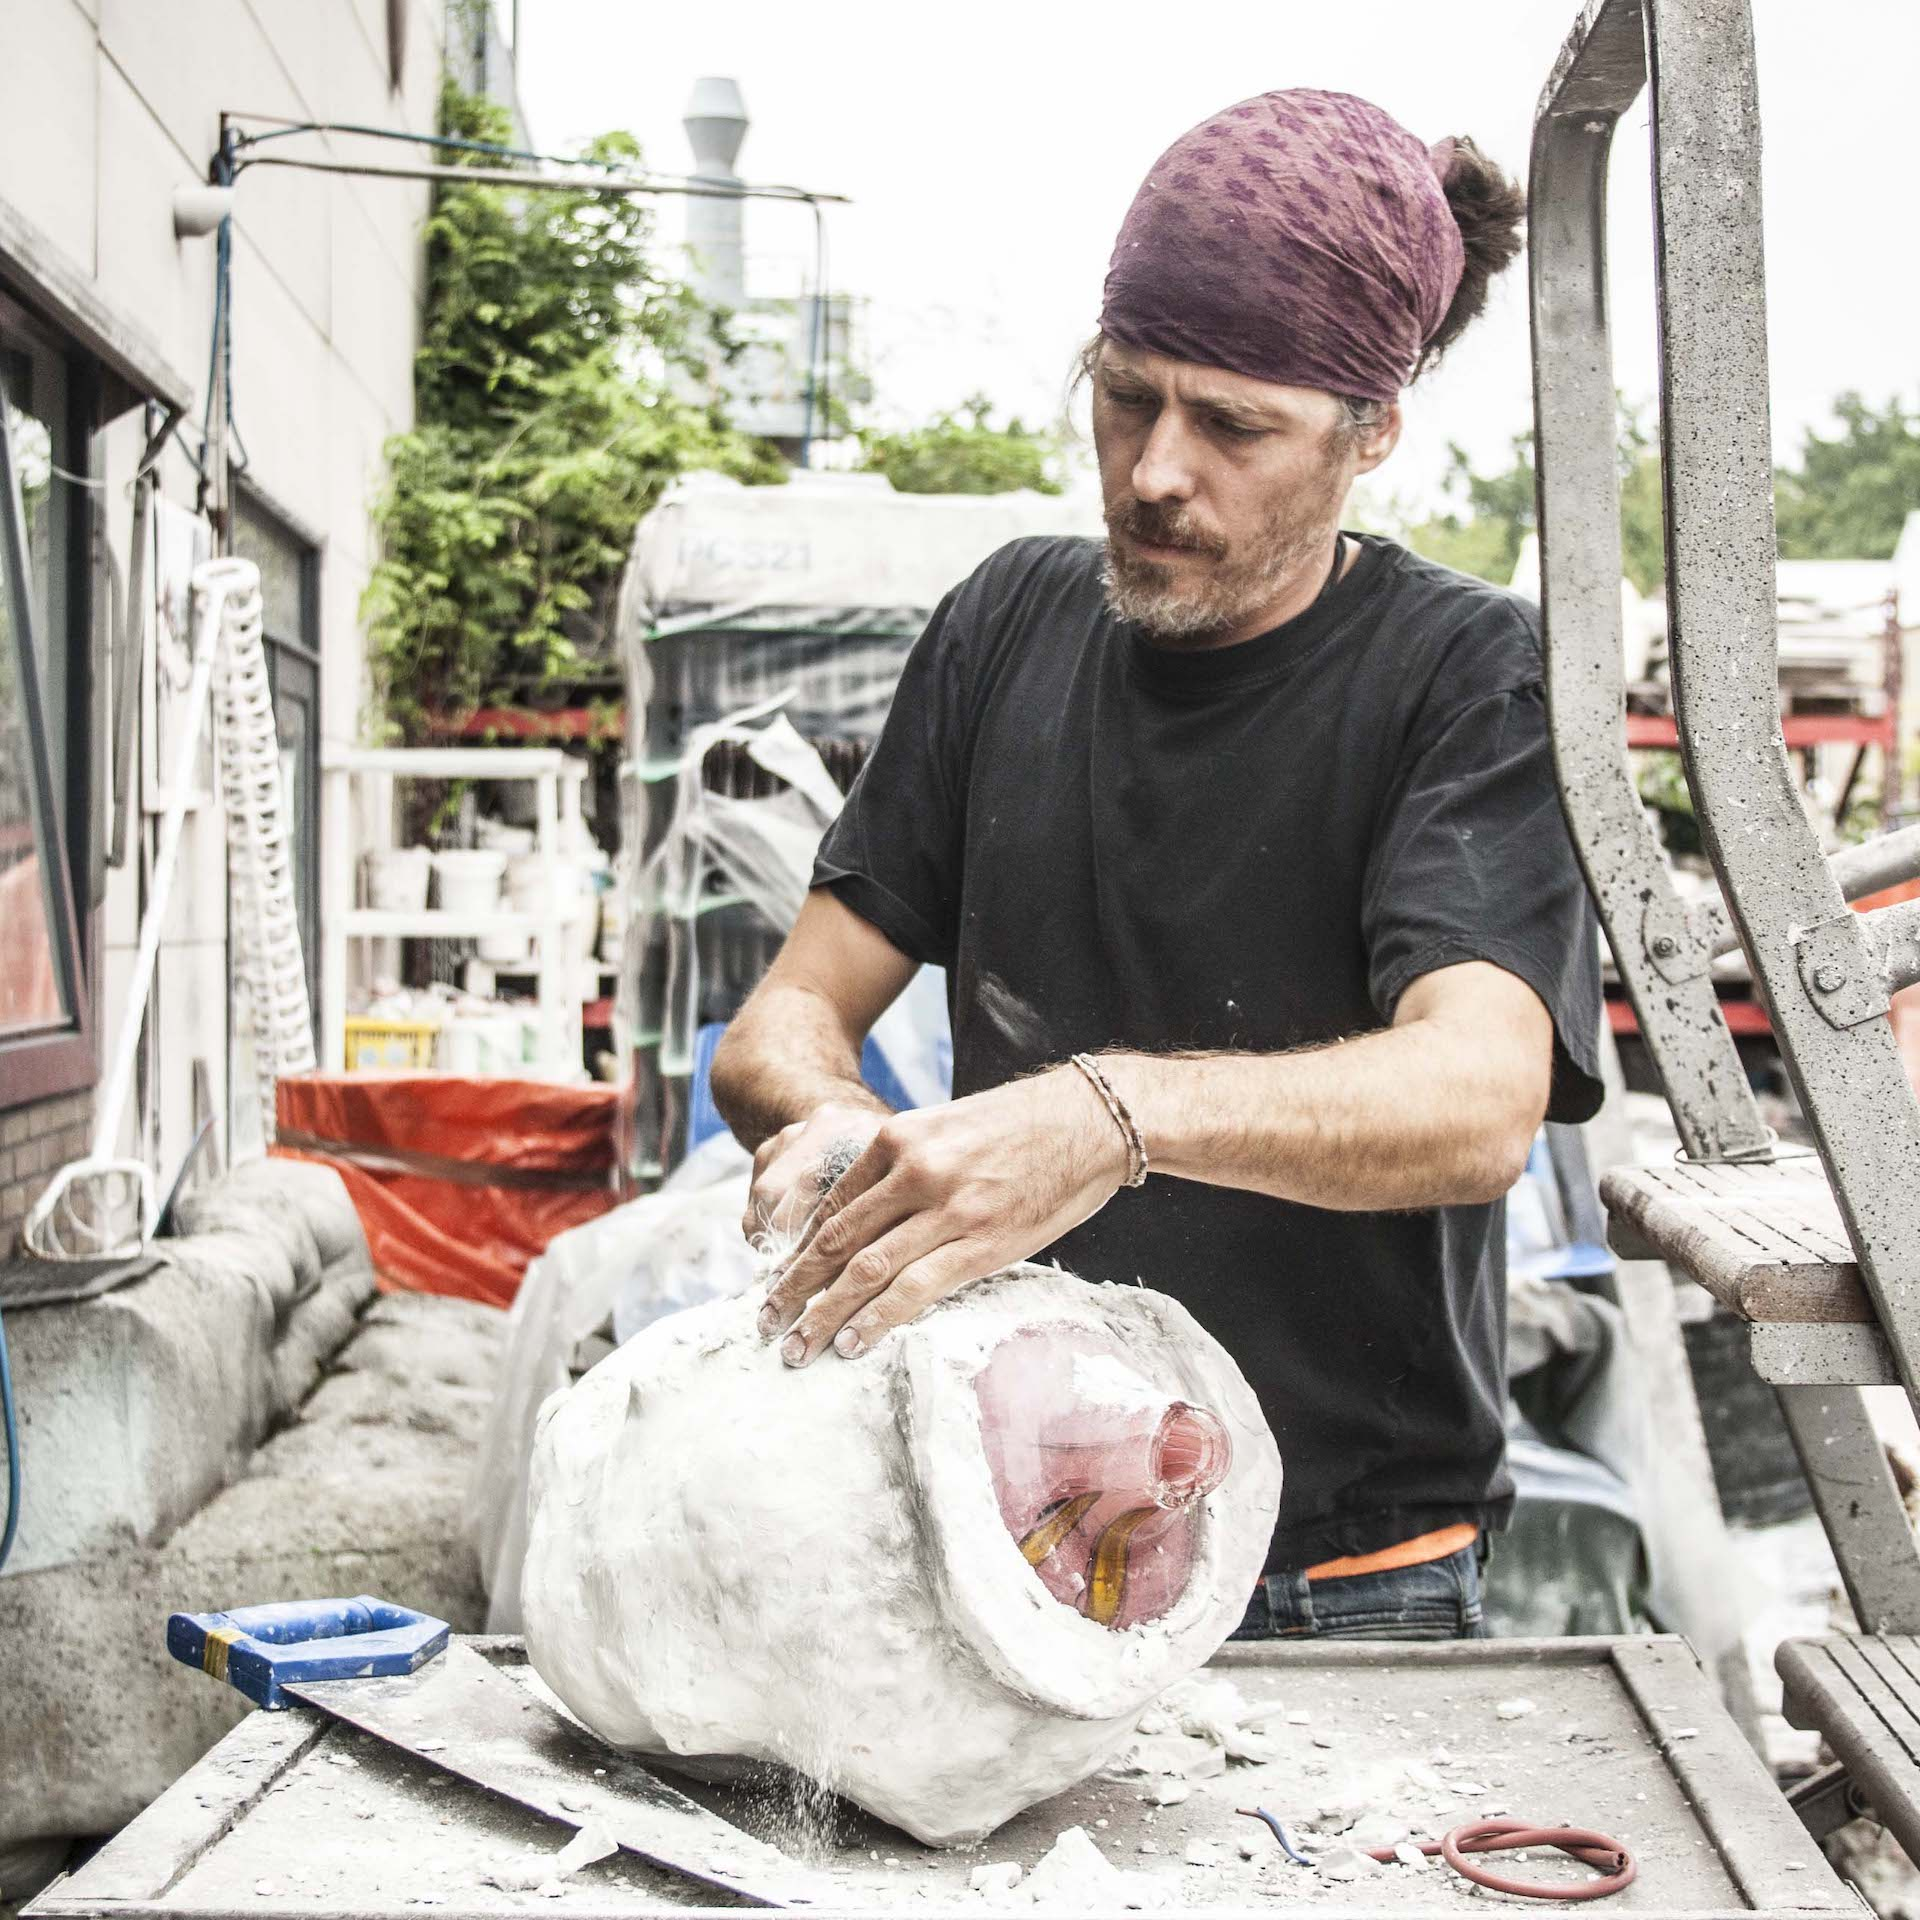 Carbonell at work. Photo © Carpenters Workshop Gallery